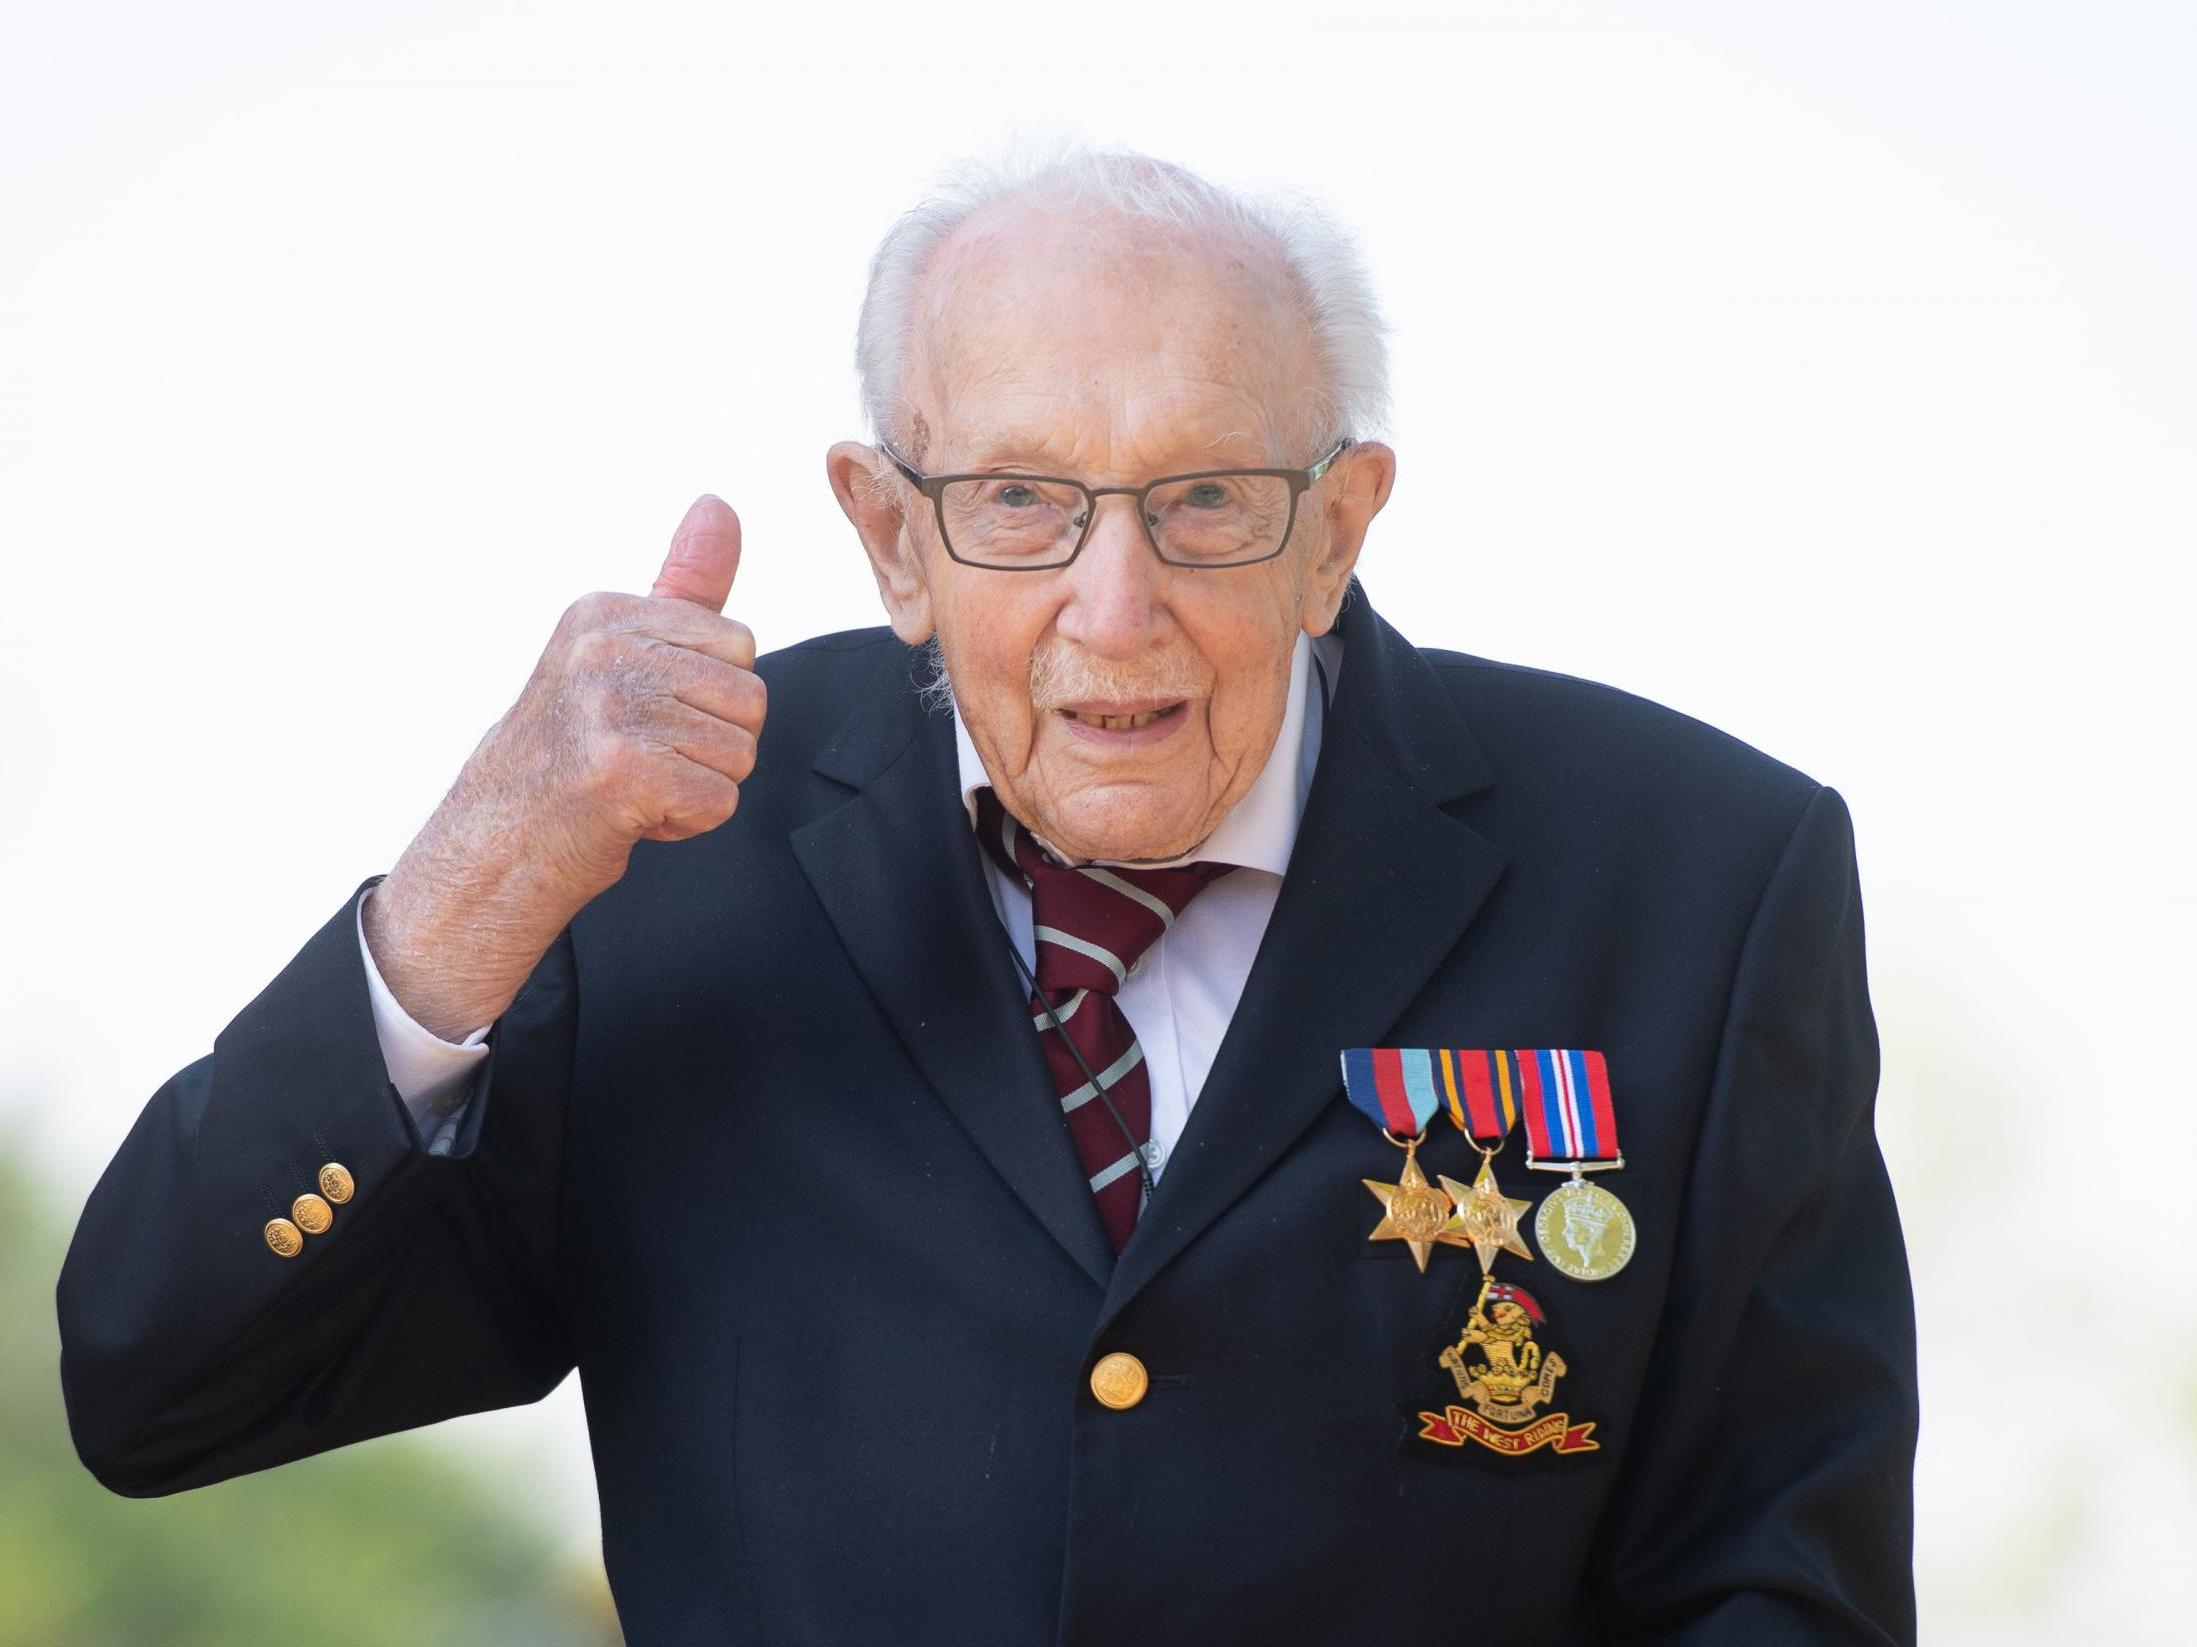 Captain Tom Moore recalls VE Day in 1945: 'It was very special'